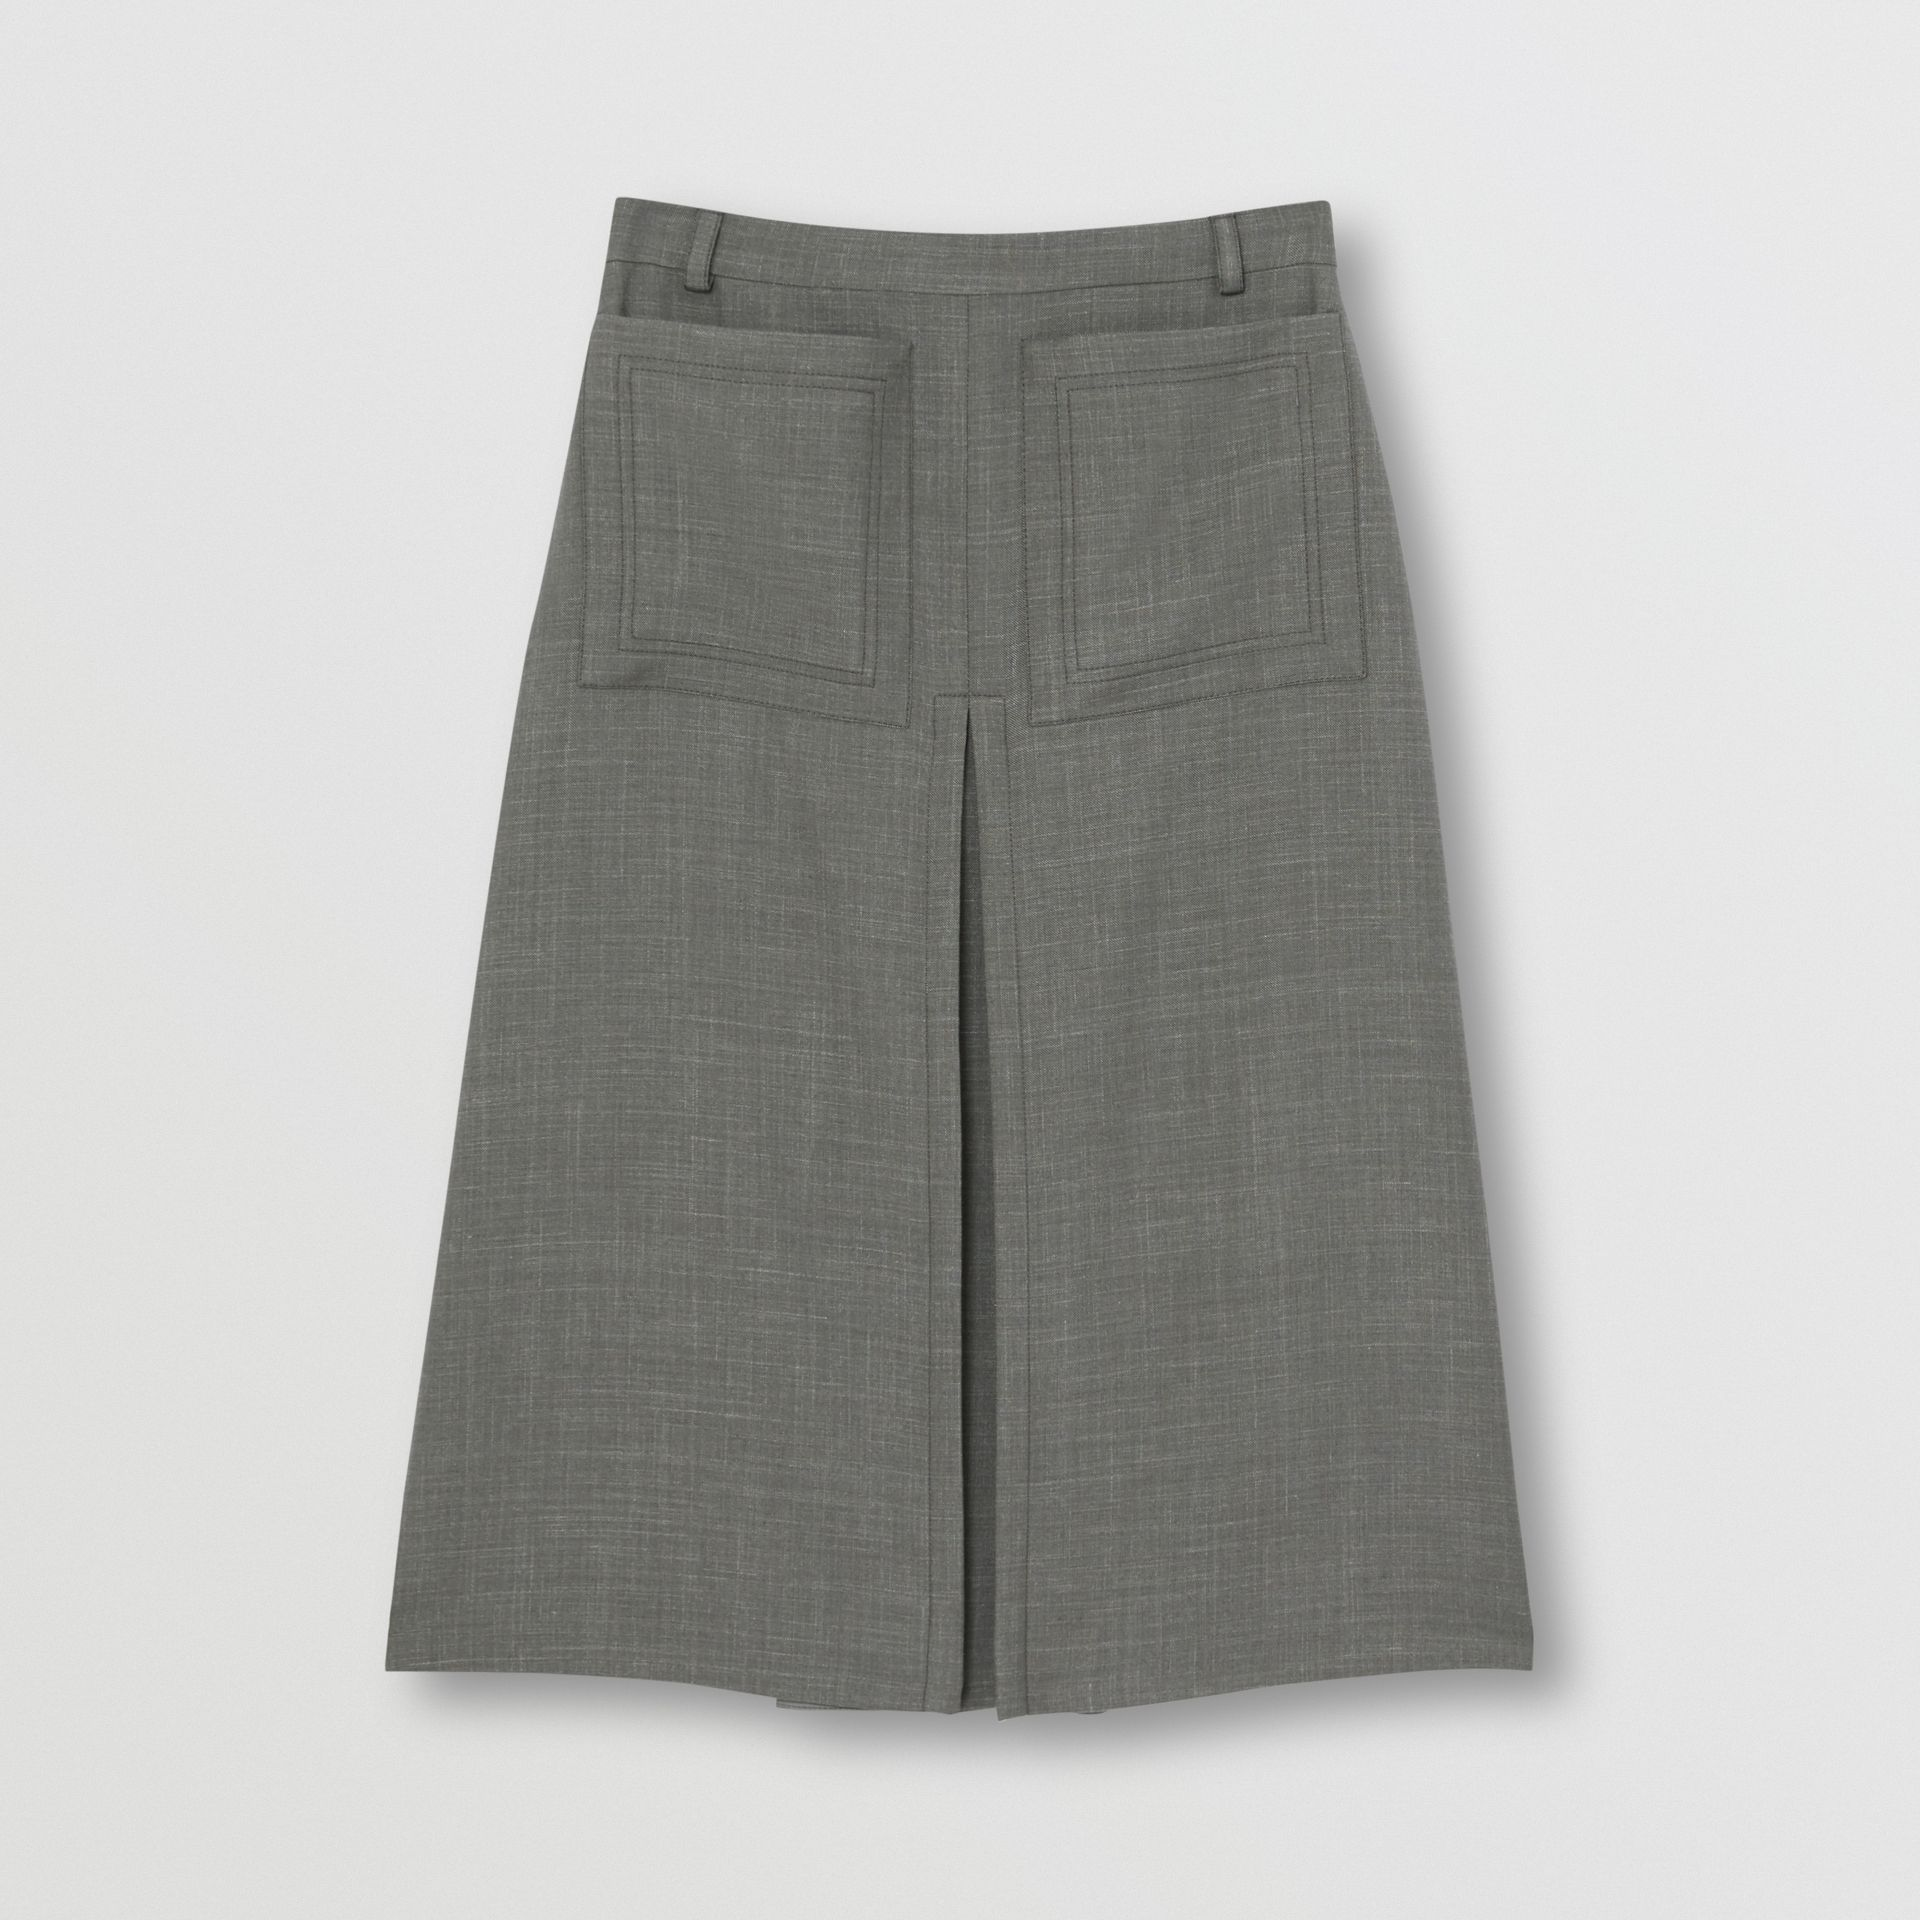 Box-pleat Detail Wool Silk Blend A-line Skirt in Charcoal Grey - Women | Burberry - gallery image 3